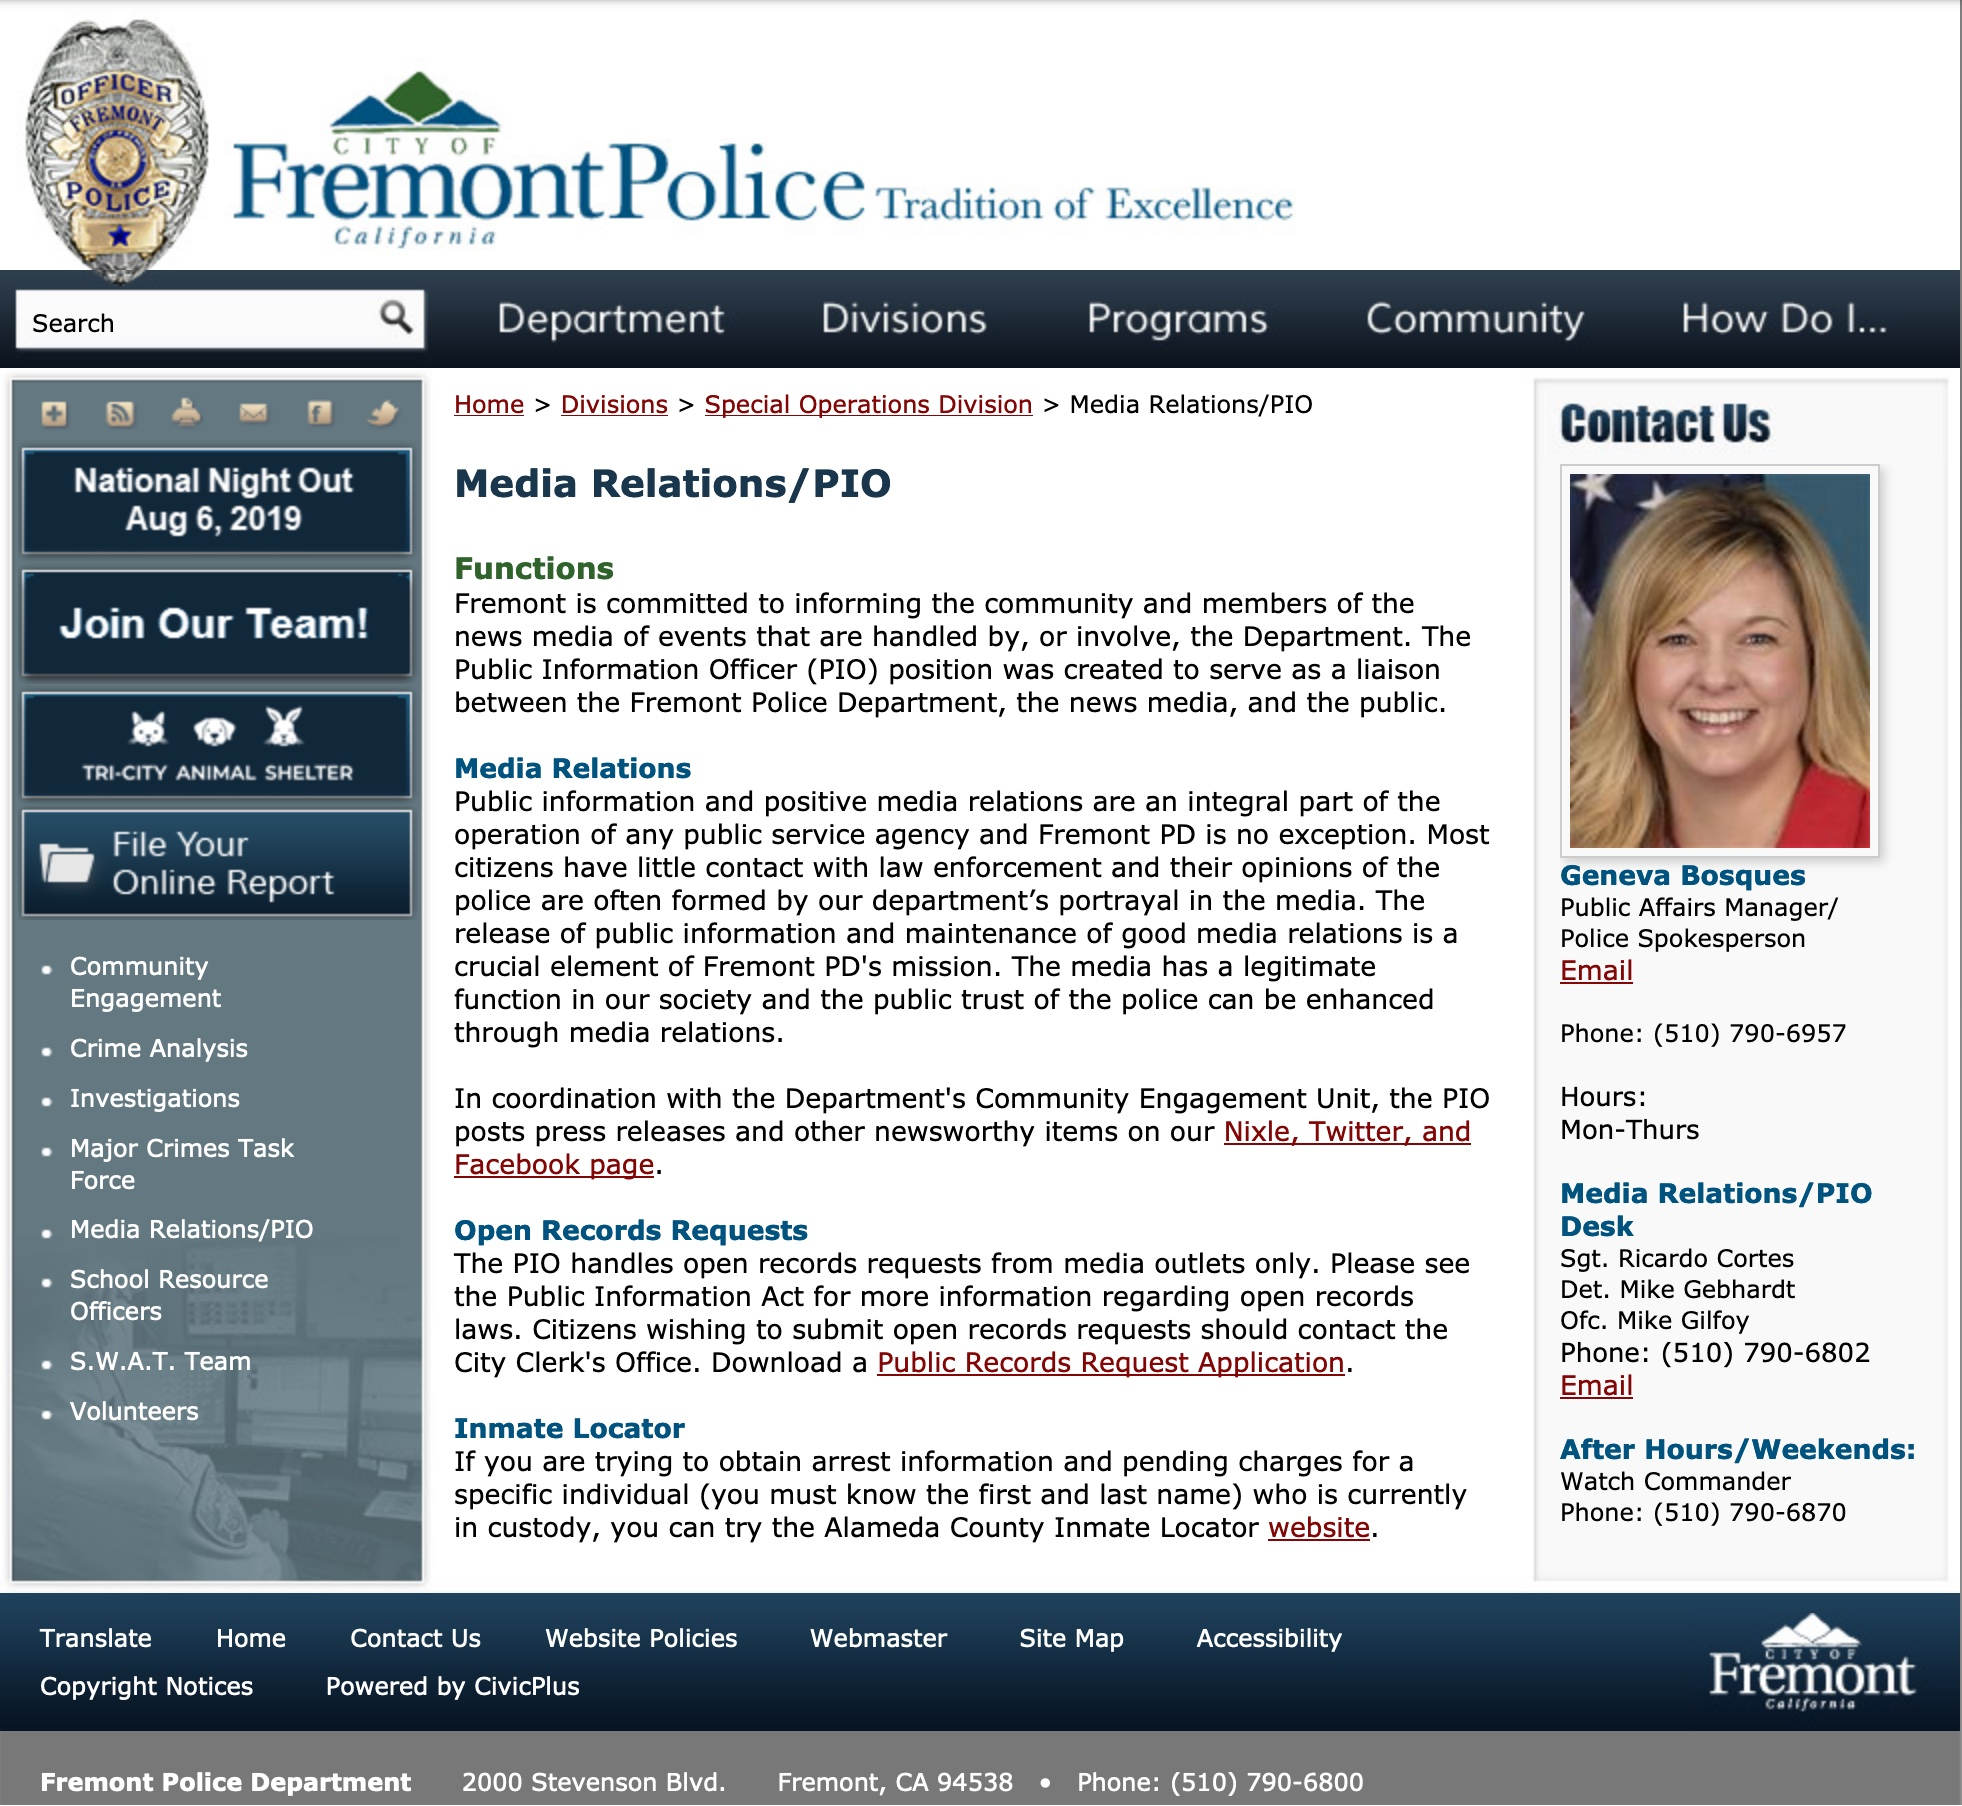 fremont police pio web page.jpg